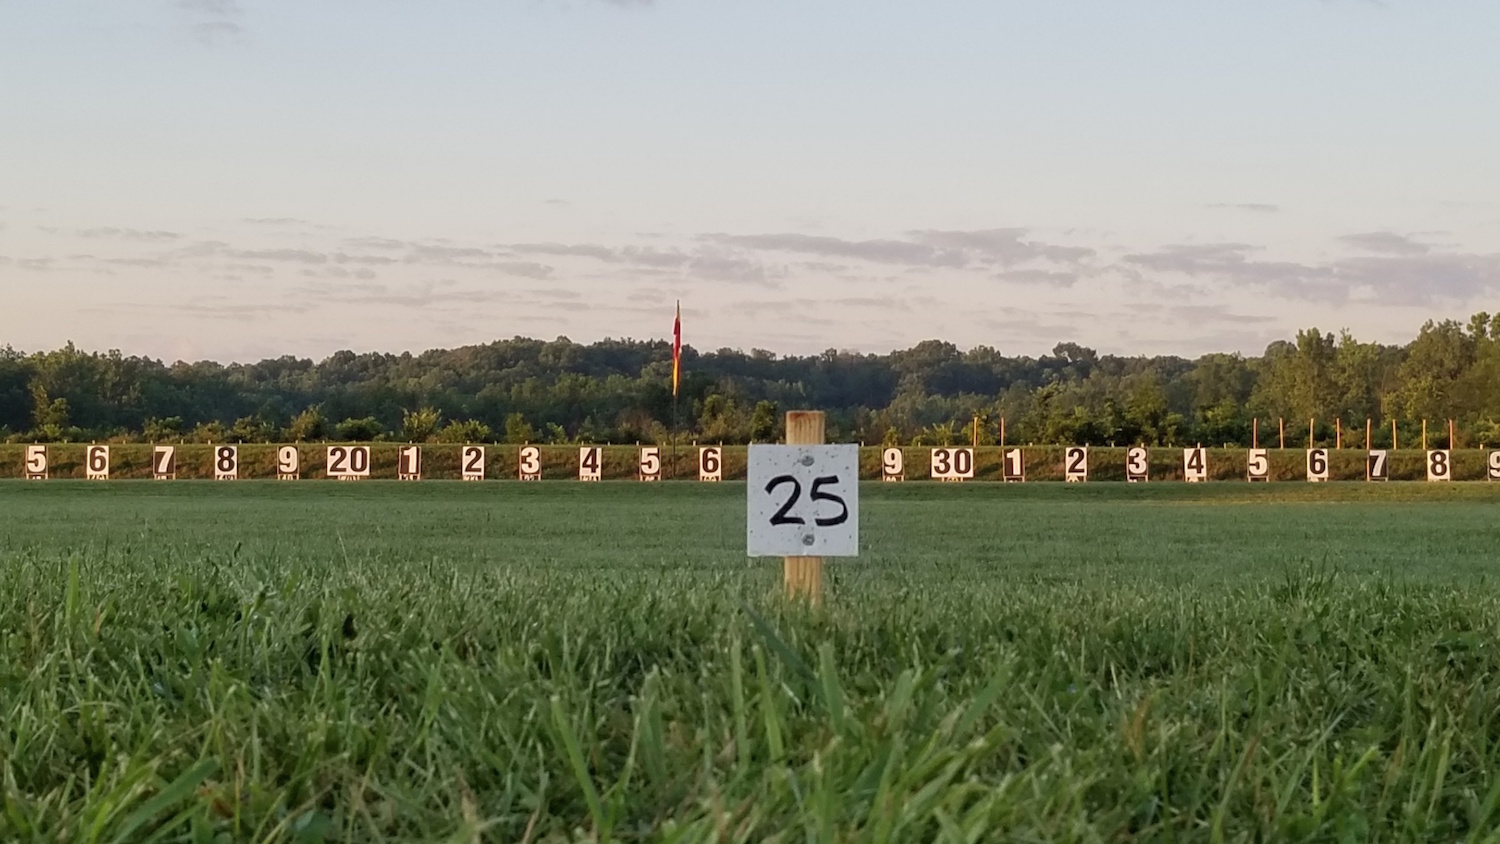 Shooting Sports Traditions Live On at Camp Atterbury During NRA High Power Rifle Championships